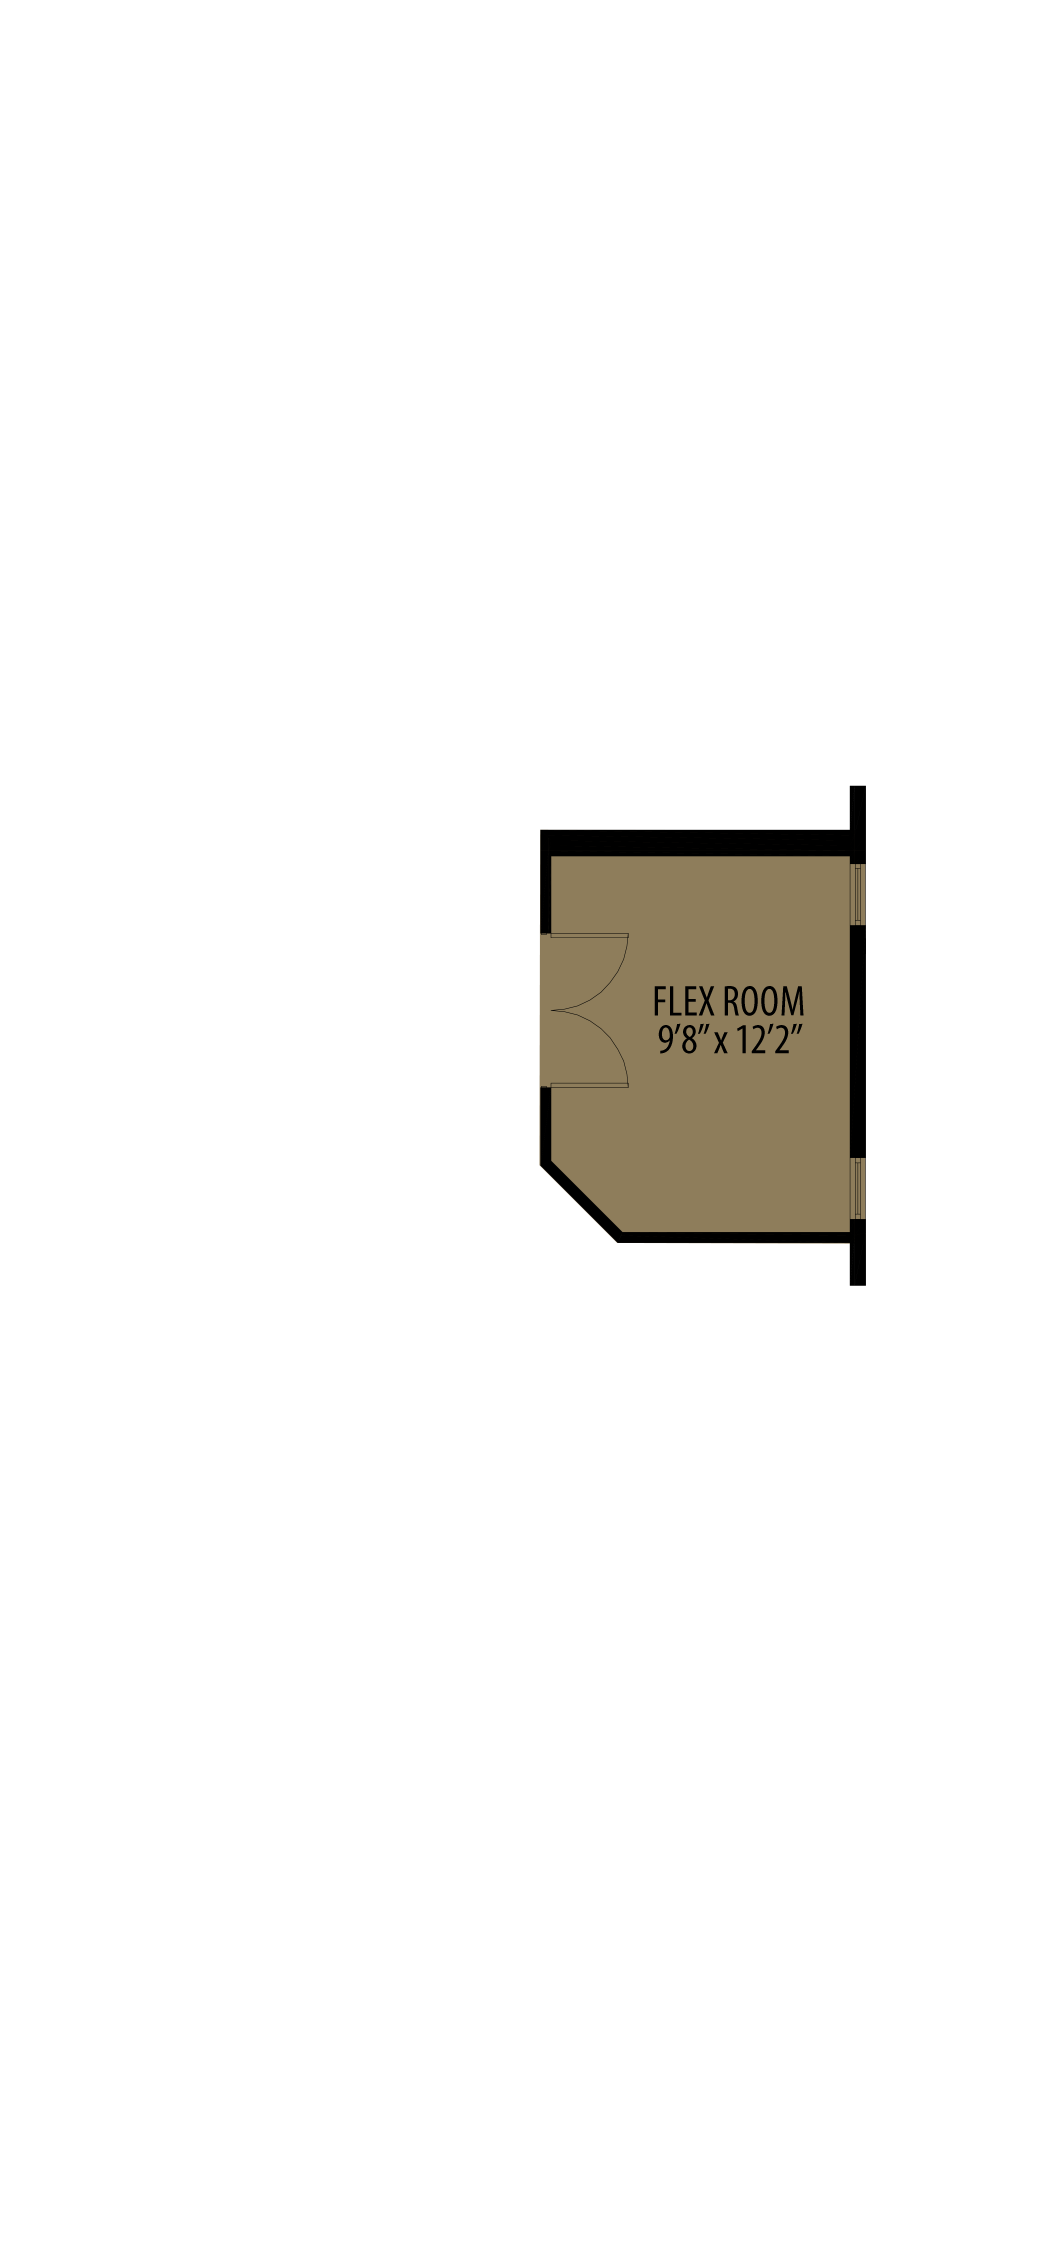 Option 5 Enclosed Flex Room